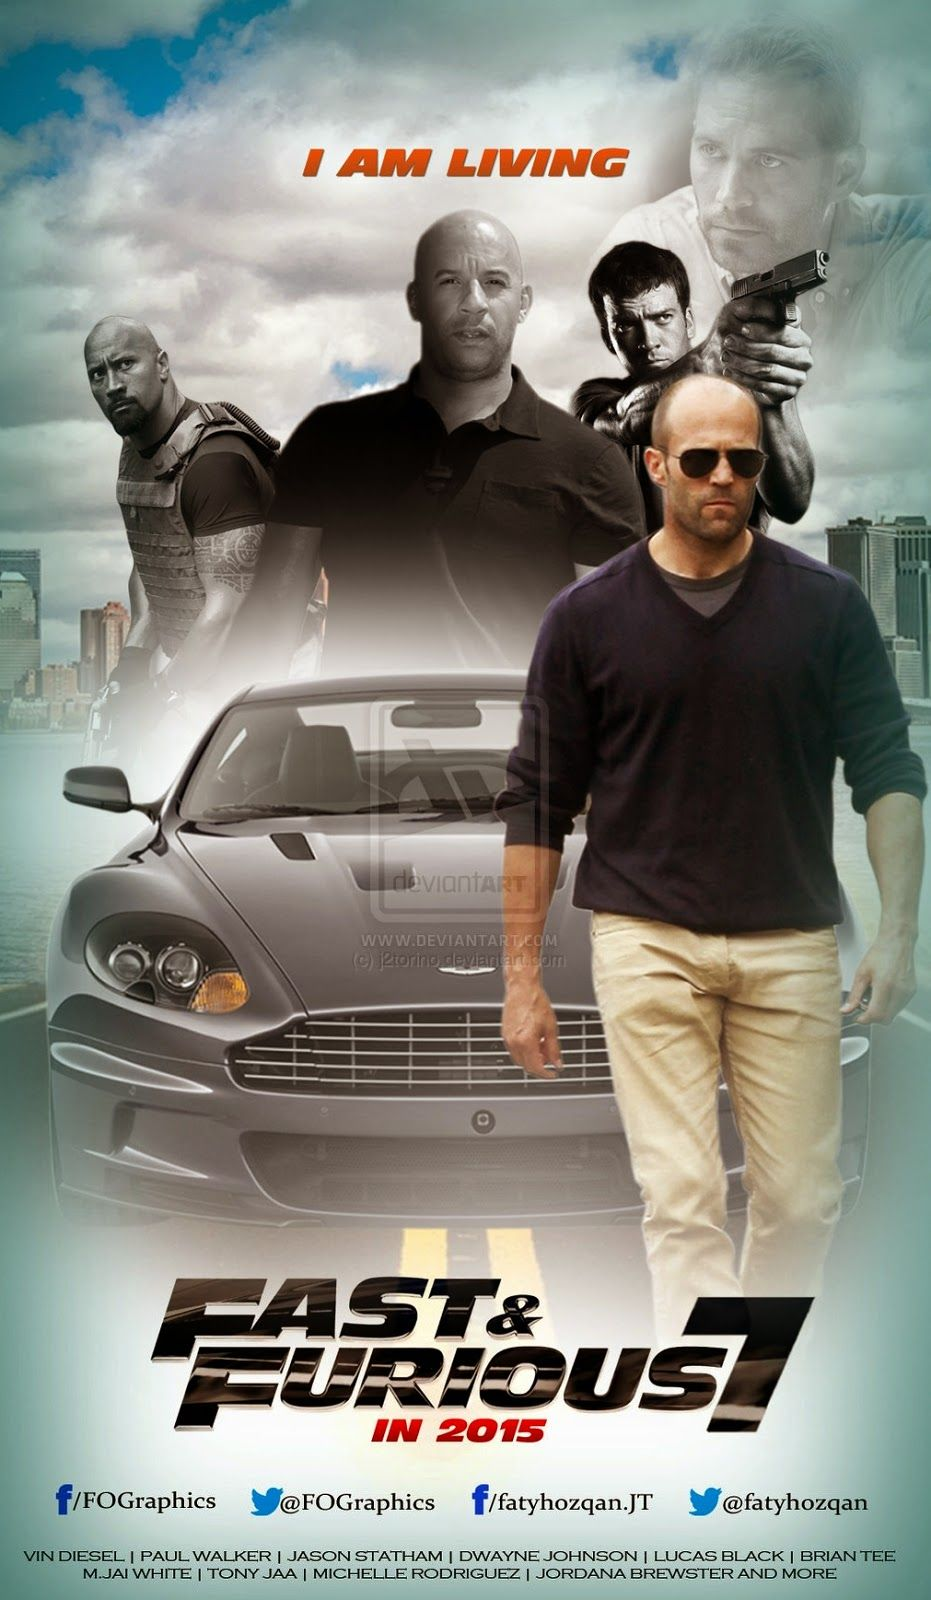 fast and furious 7 online free full movie hd